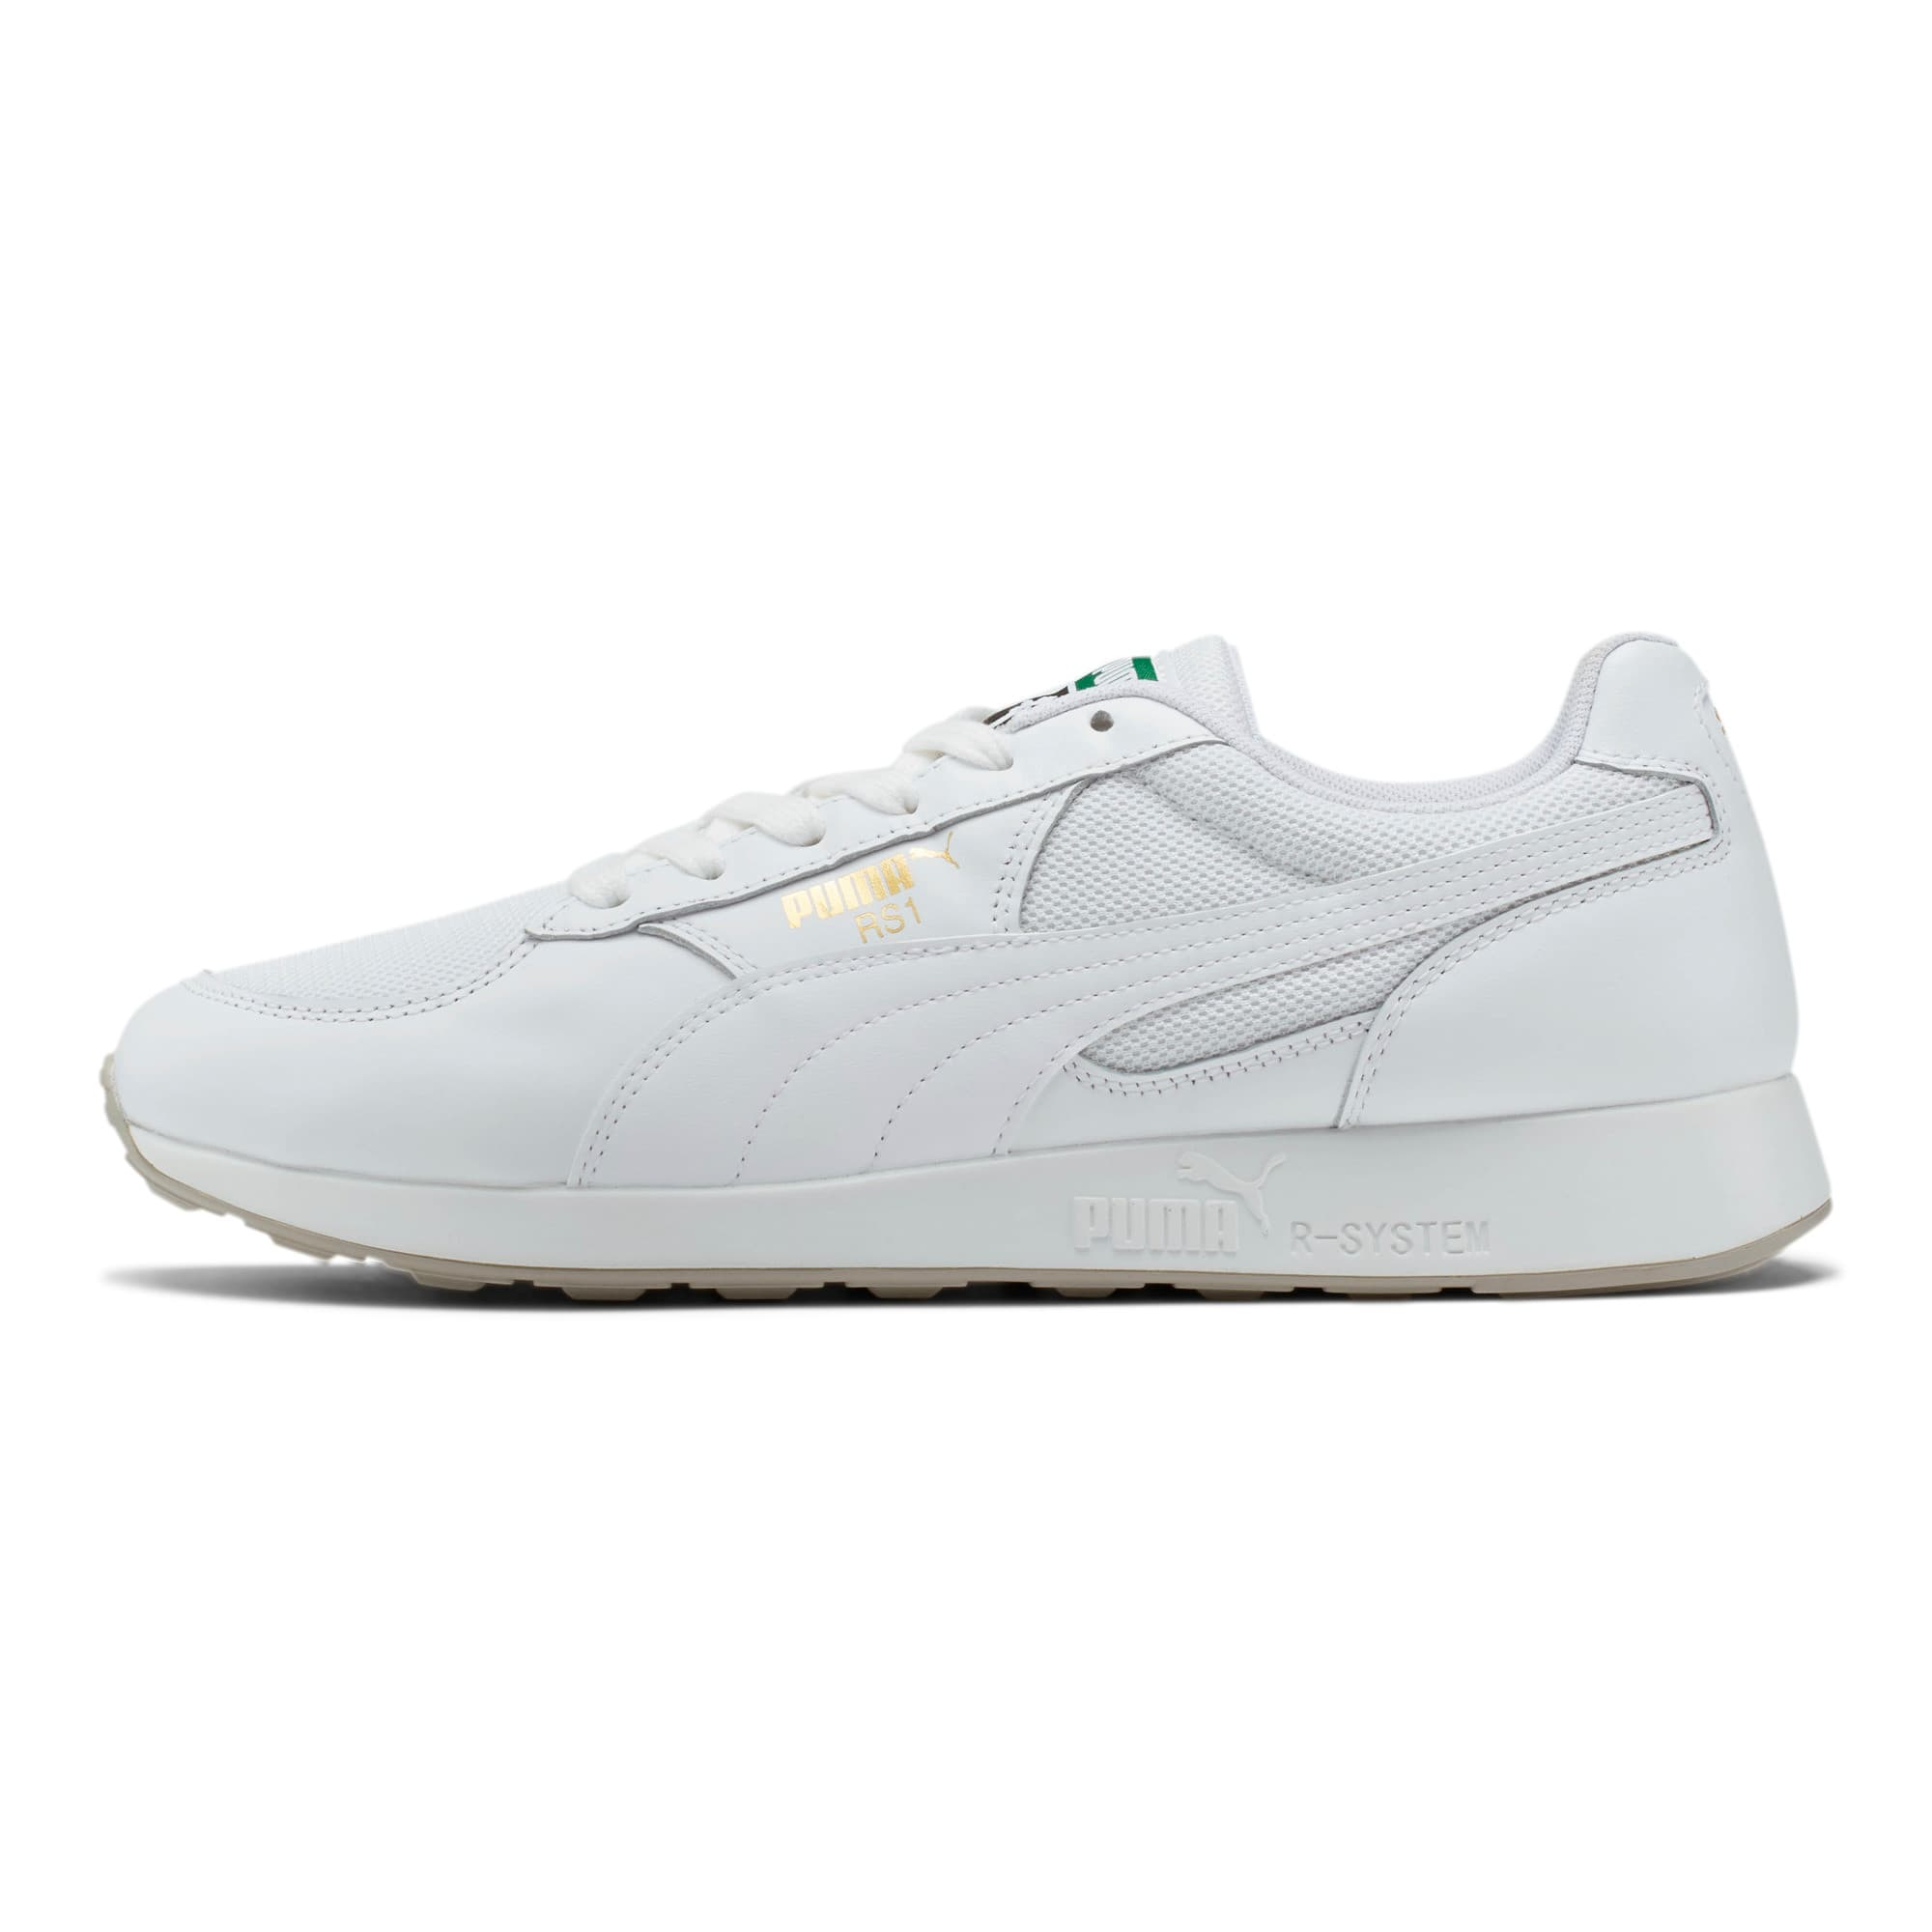 Thumbnail 1 of RS-1 OG CLONE Sneakers, Puma White-Gray Violet, medium